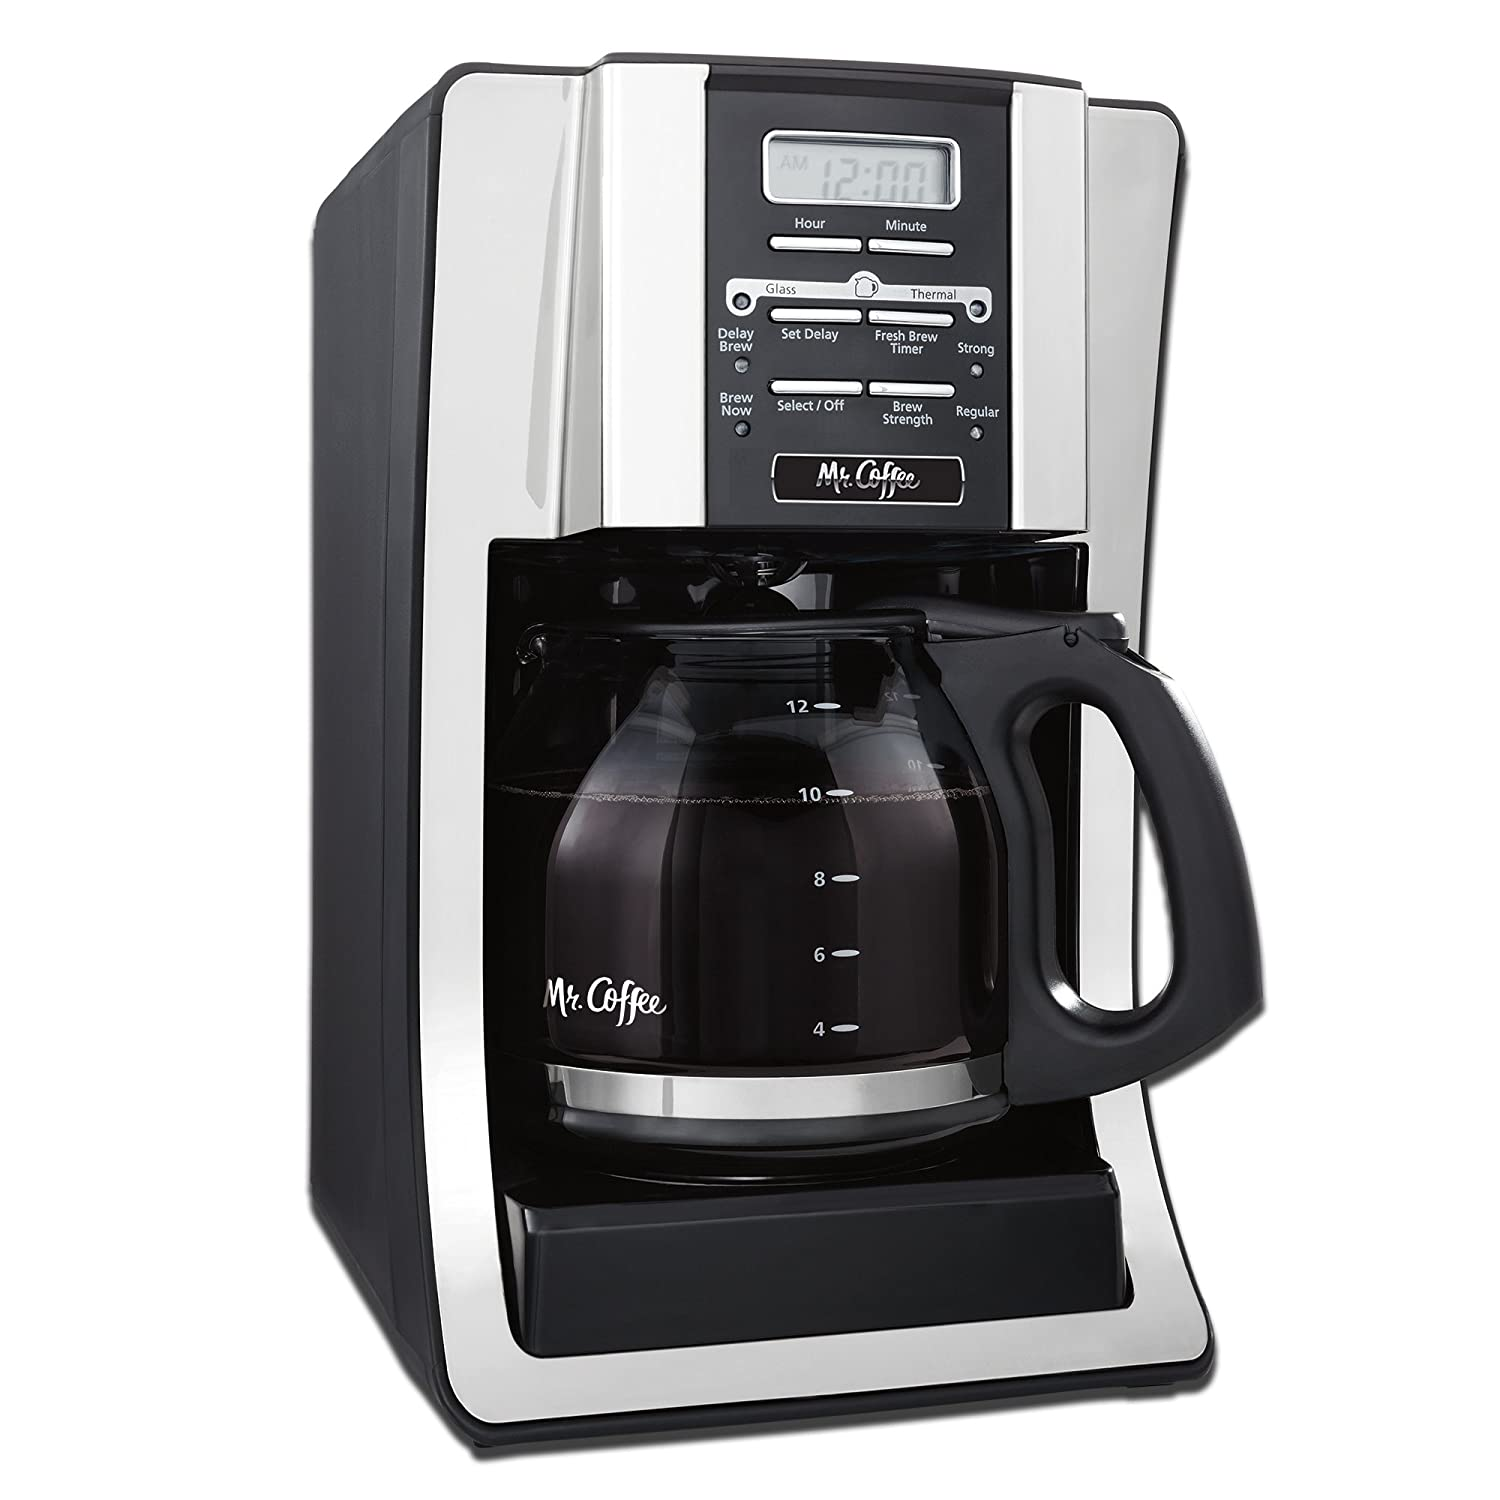 Best Programmable Coffee Maker 2016 : 10 best instant coffee makers 2017 For ome & Office List 10 Best Buy Online Reviews